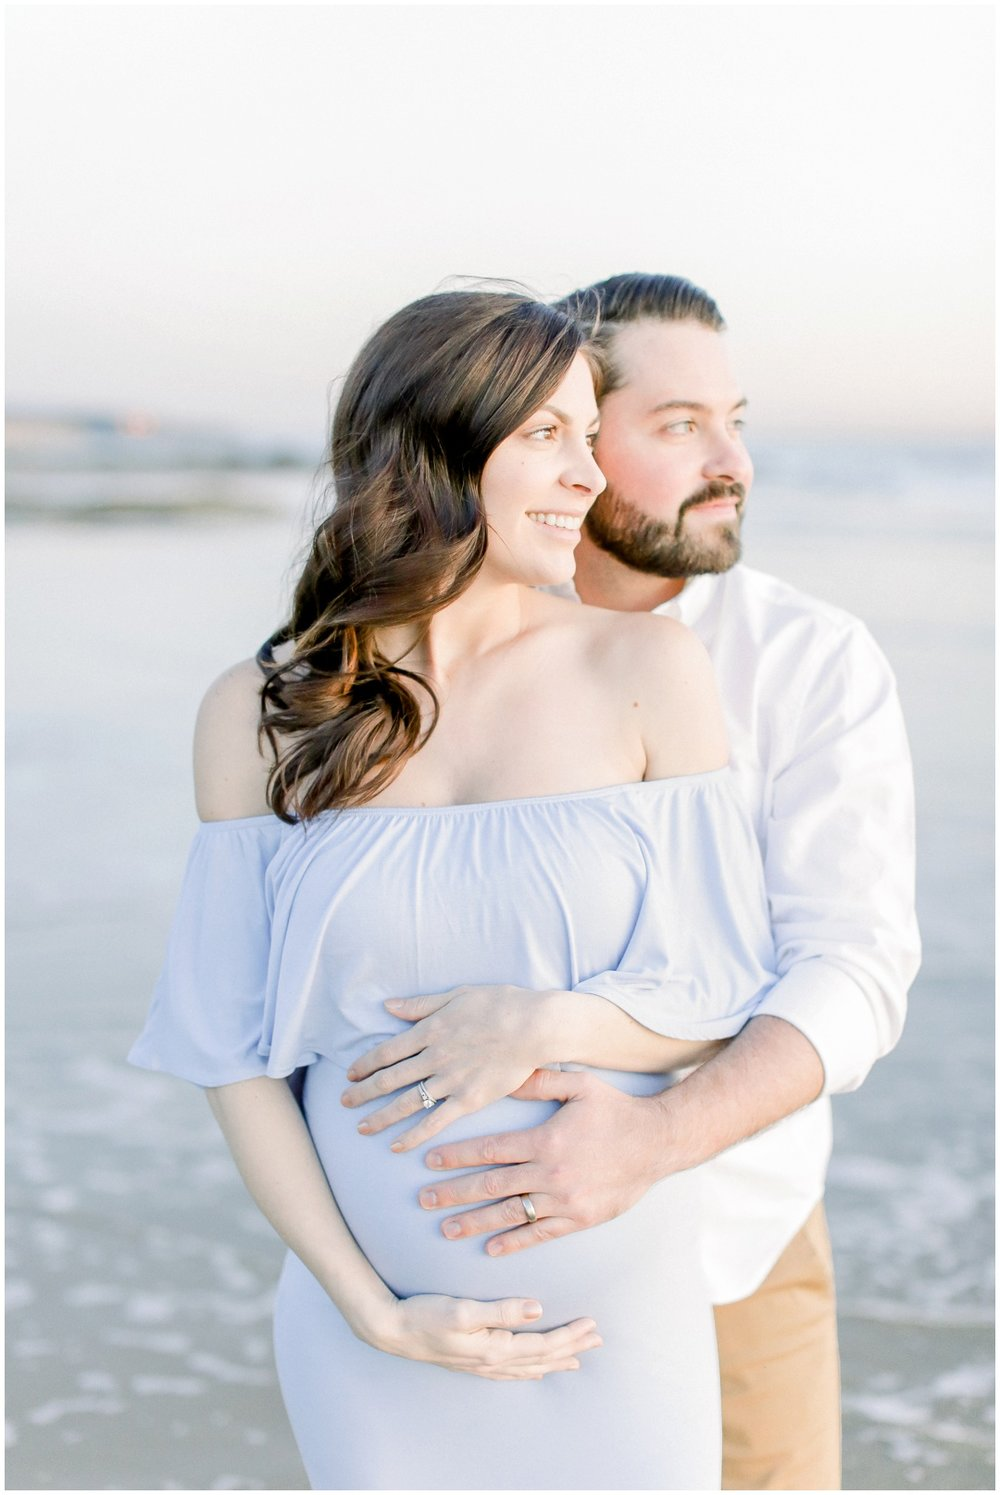 Newport_Beach_Newborn_Photographer_Newport_Beach_Maternity_Photographer_Orange_County_Family_Photographer_Cori_Kleckner_Photography_Huntington_Beach_Photographer_Shelby_Kemper_Family_Jared_Kemper__2948.jpg